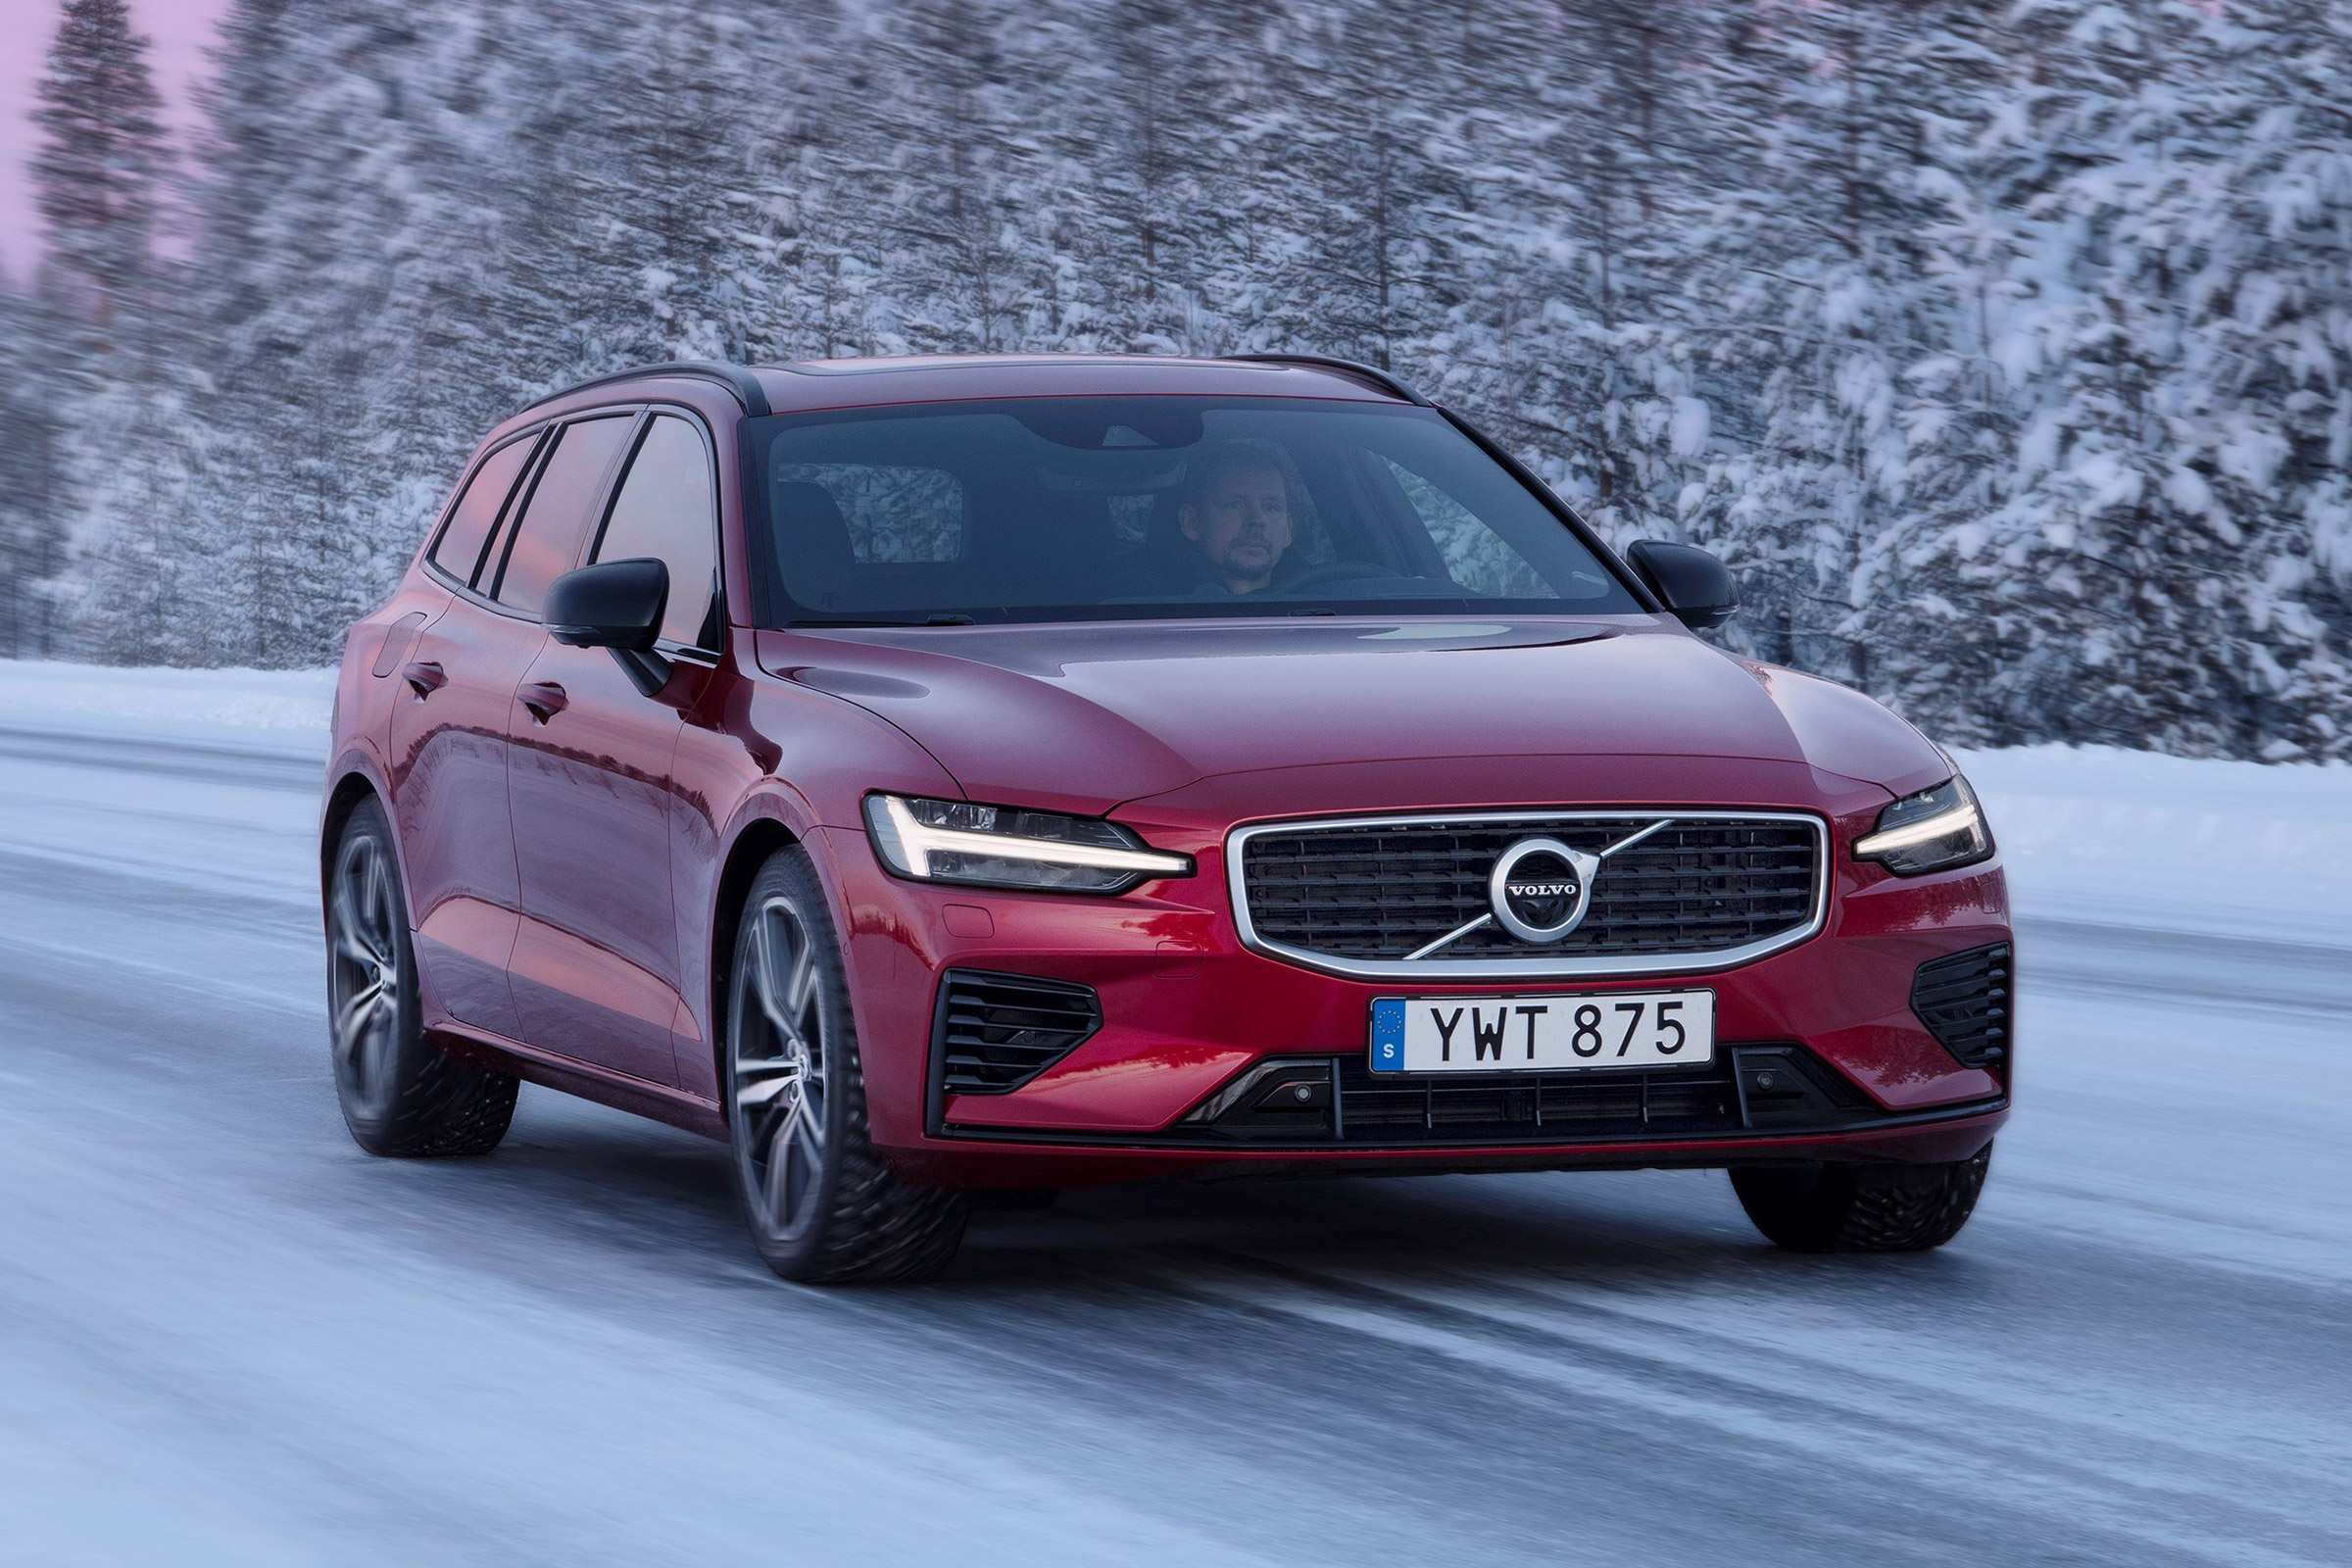 26 Gallery of Volvo Hybrid 2019 Price New Engine Review for Volvo Hybrid 2019 Price New Engine